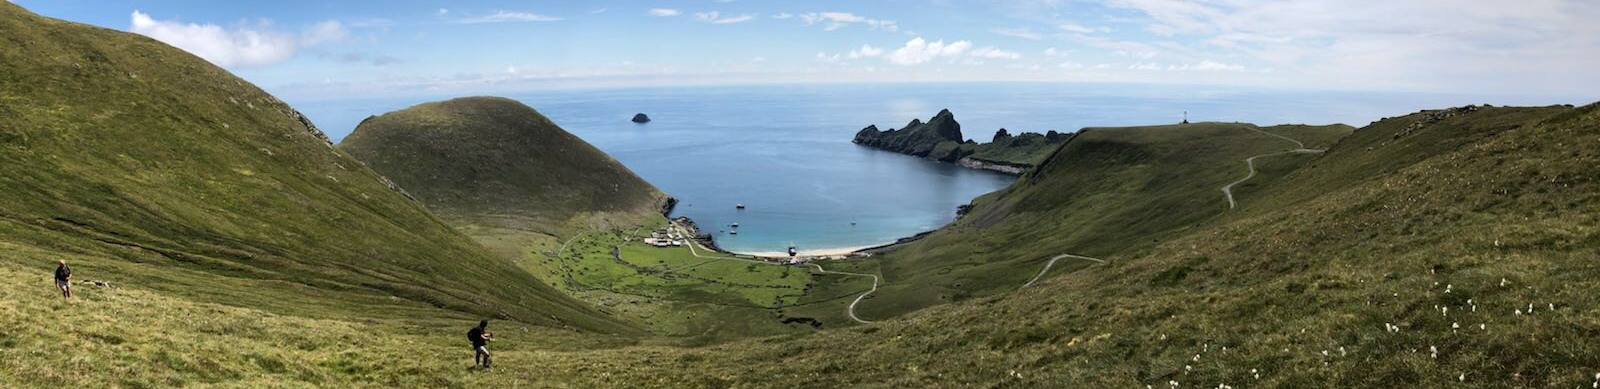 St Kilda Cruise photo James Fairbairns